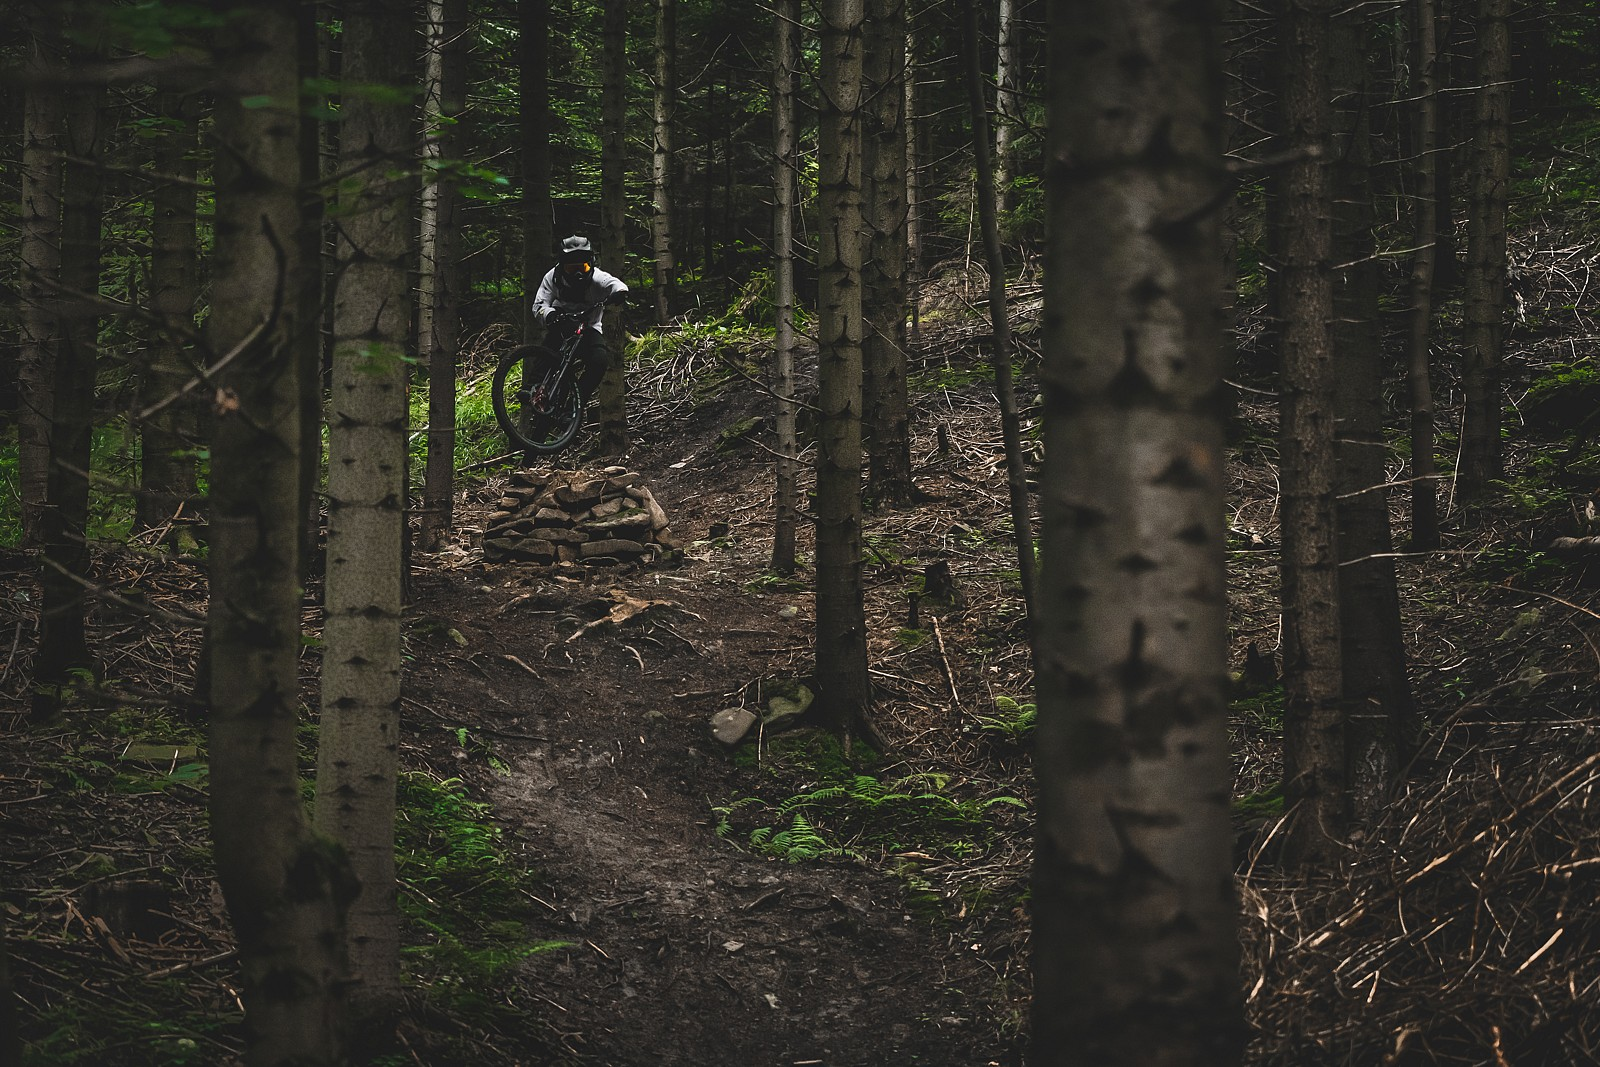 Welcome to the jungle - Banan - Mountain Biking Pictures - Vital MTB